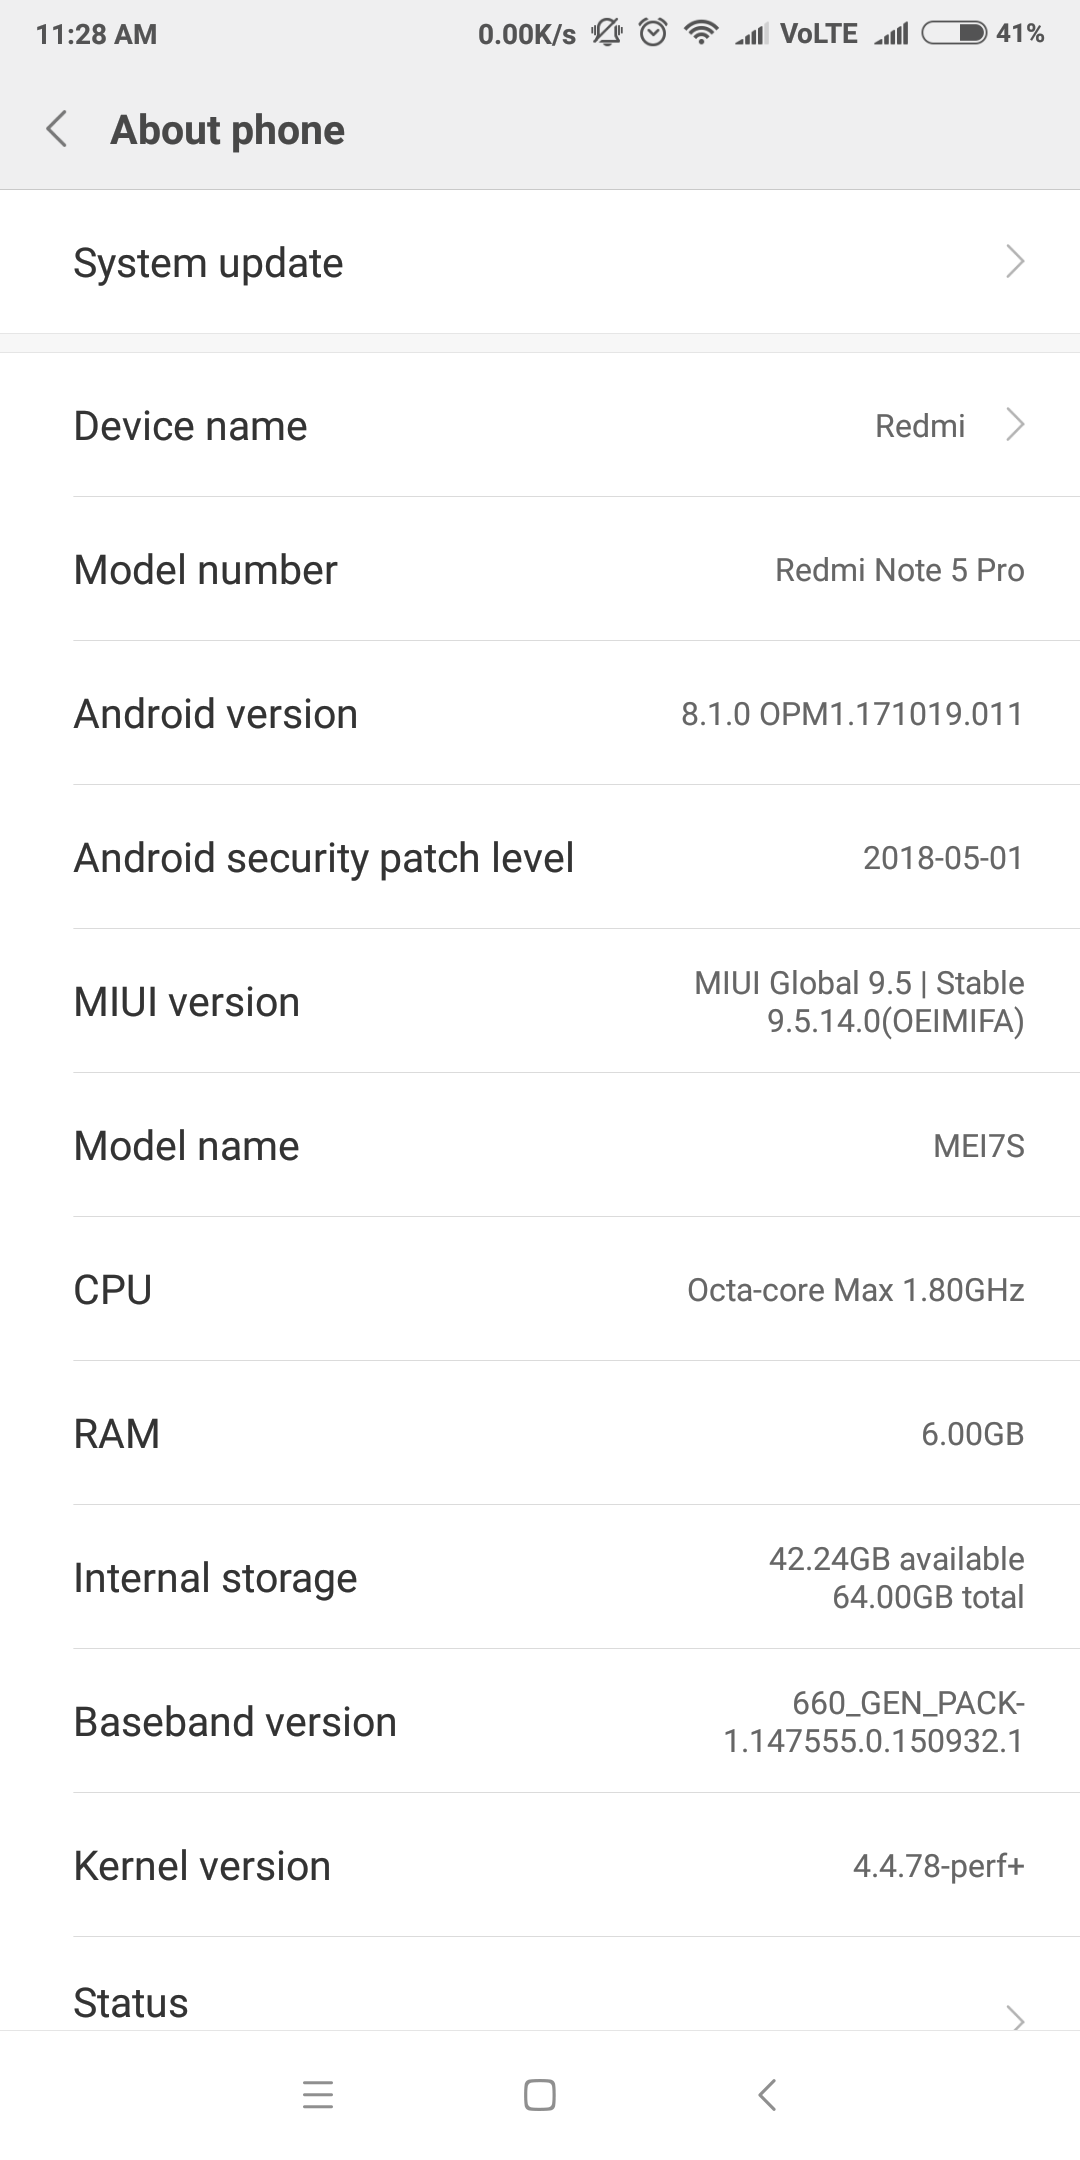 What is your review on the MIUI 9 5 14 0 update for the Redmi Note 5